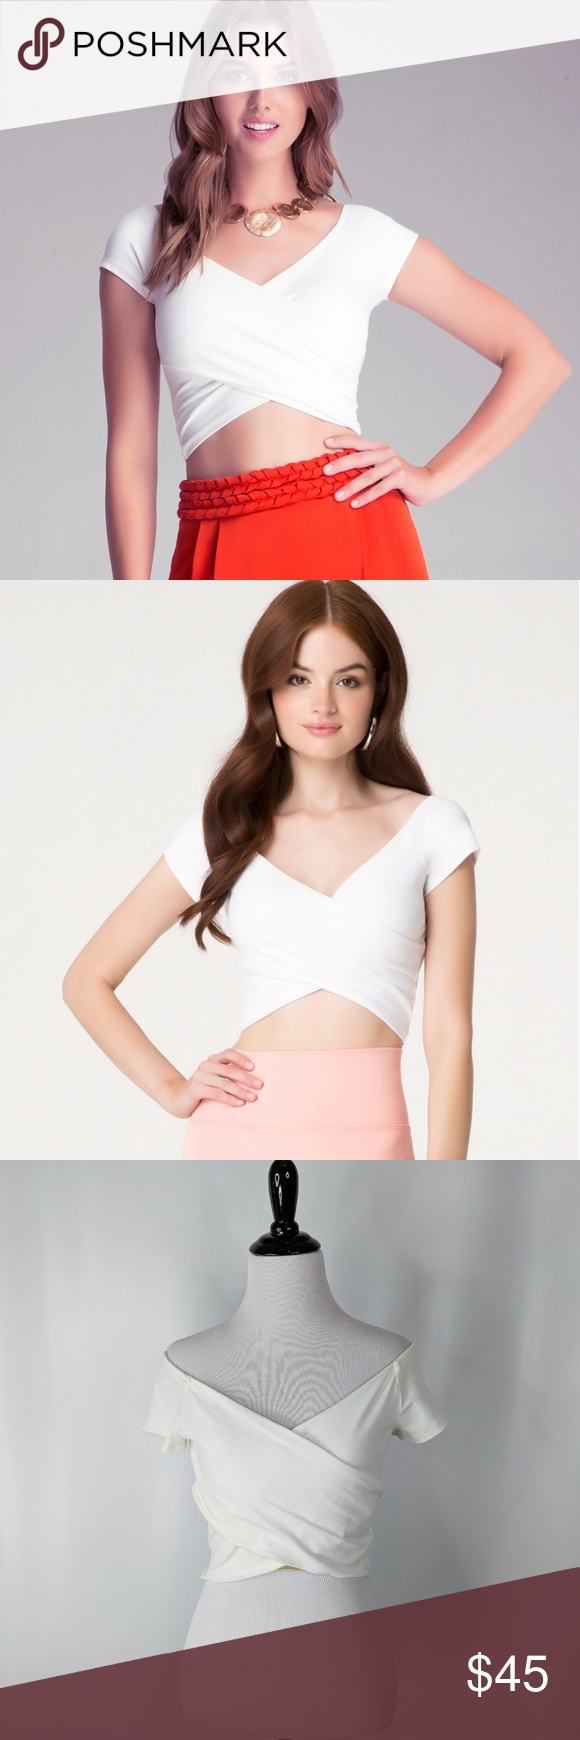 76b75341301475 BEBE white knit wrap off shoulder crop top NWT 186 BEBE white knit wrap off  shoulder crop top NWT. Short and fabulous. Show off your luxurious style  wearing ...